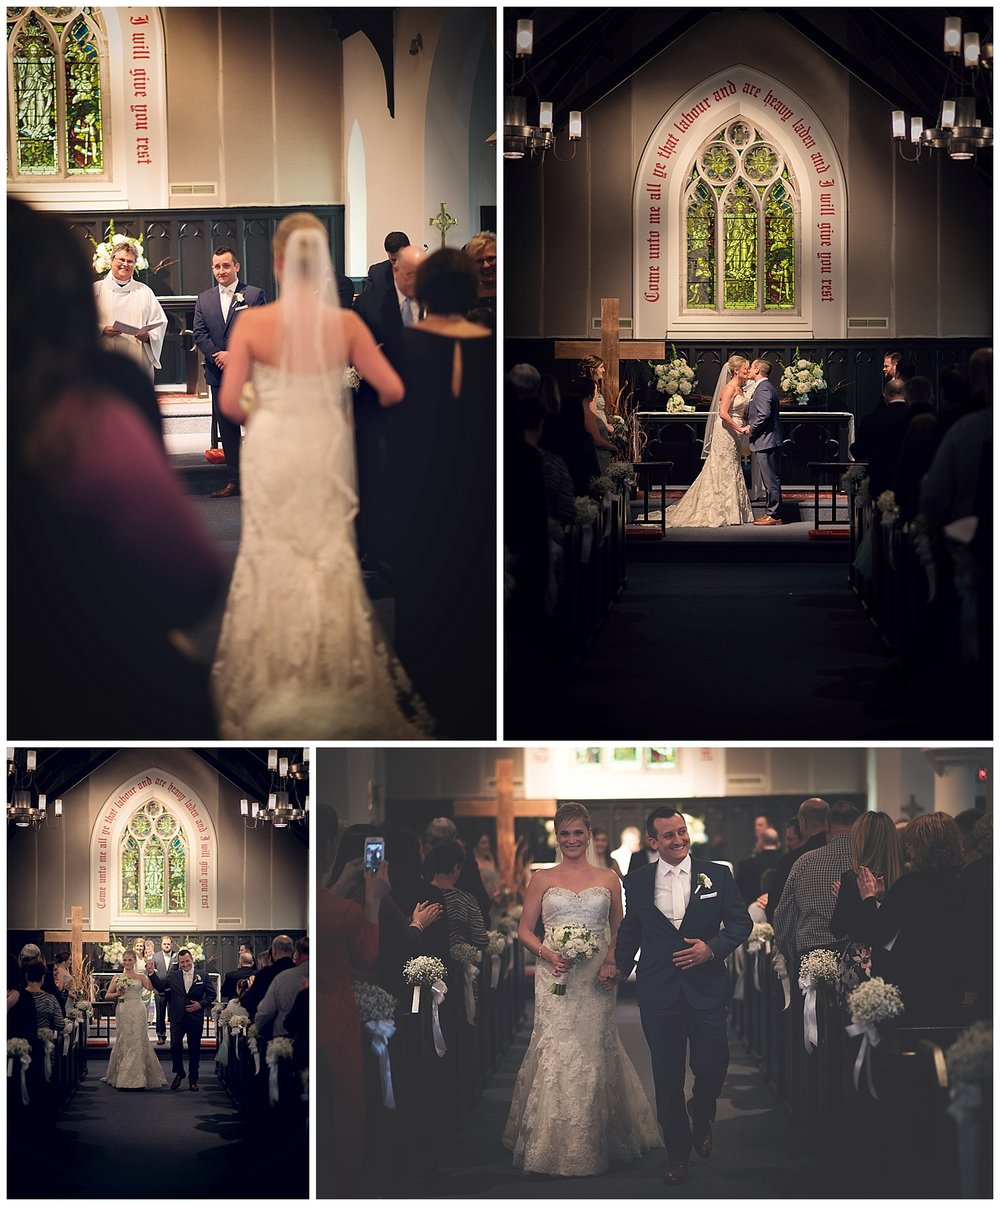 Wedding_Photographer_In_NEPA_Normandy_Farm_Catholic_Ceremony_0012.jpg